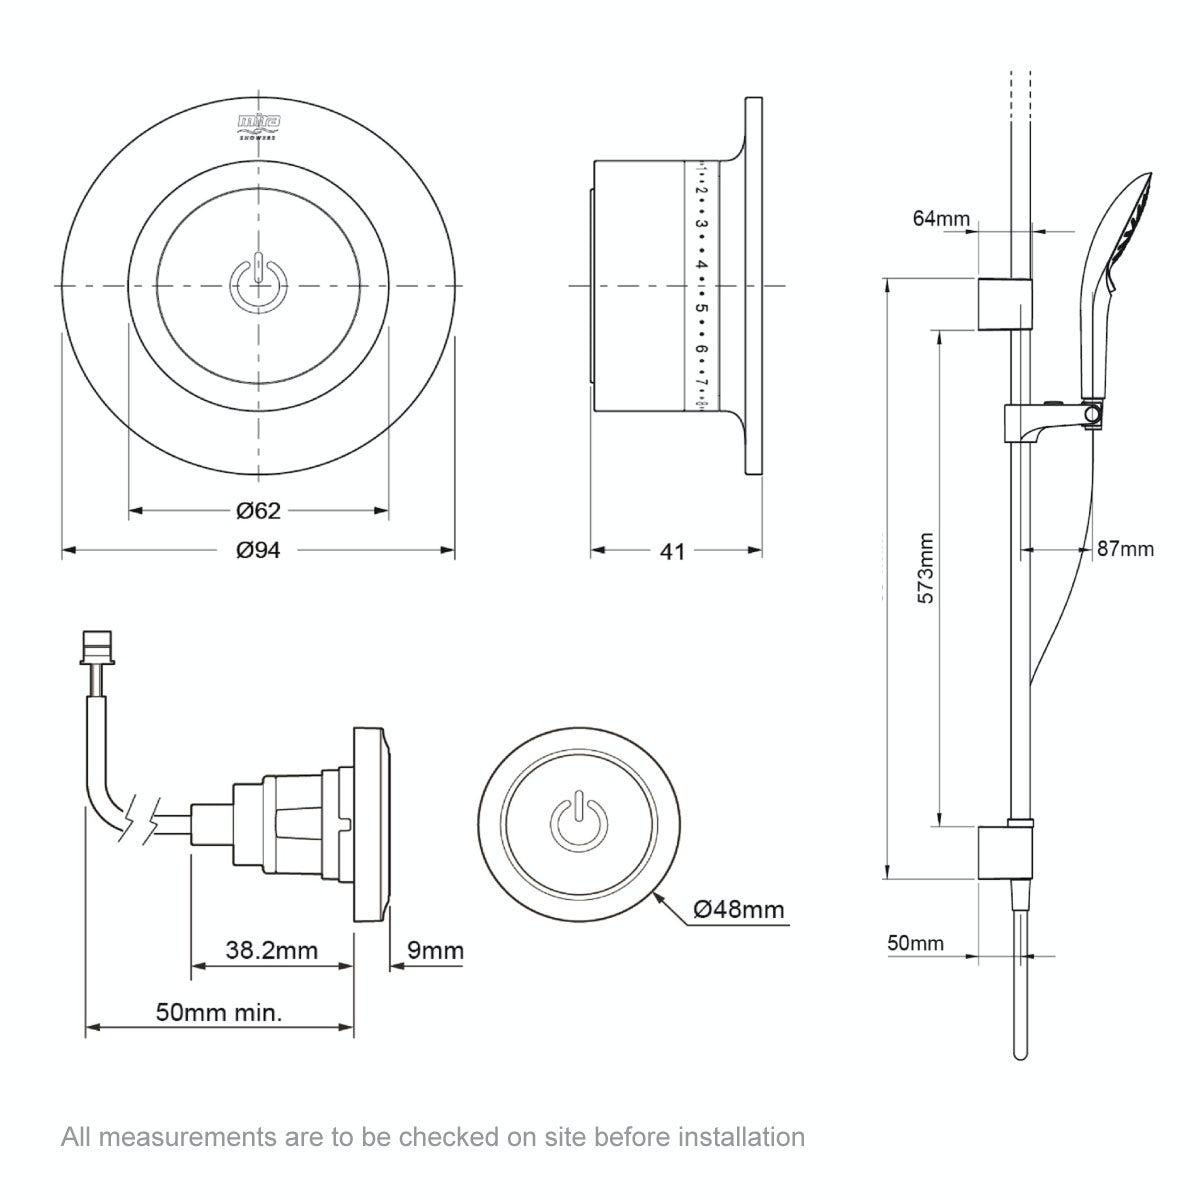 Dimensions for Mira Mode ceiling fed digital shower pumped